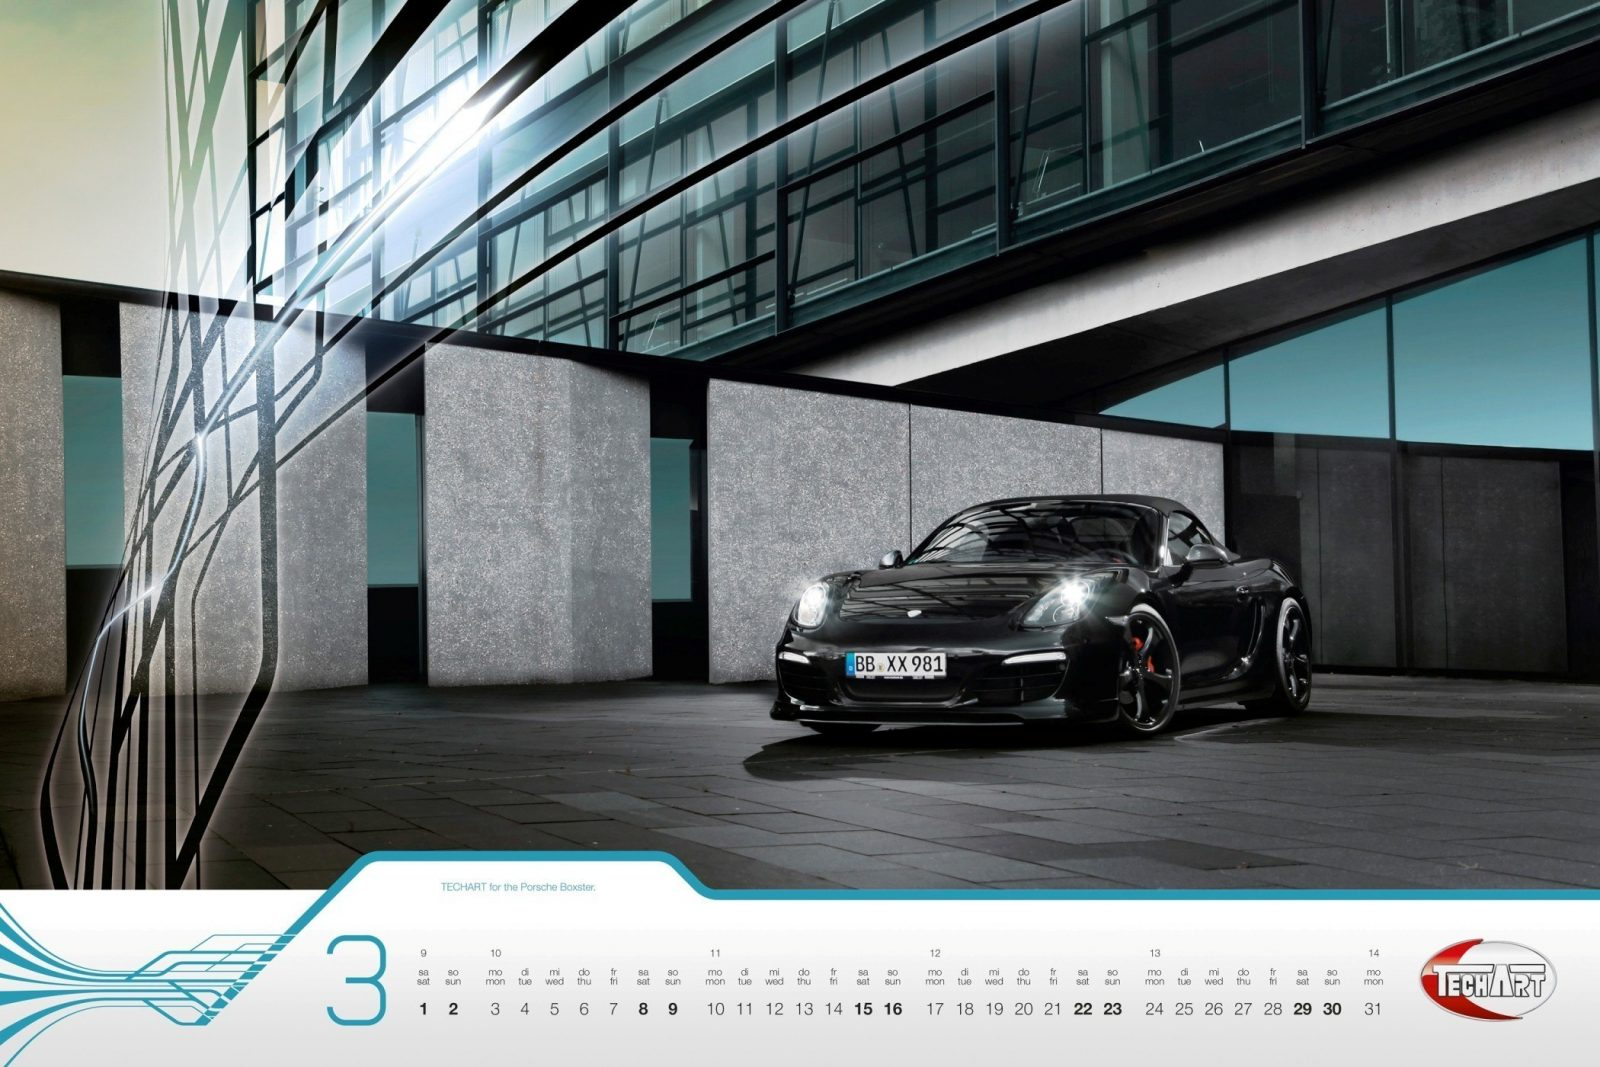 TECHART_Calendar_2014_March